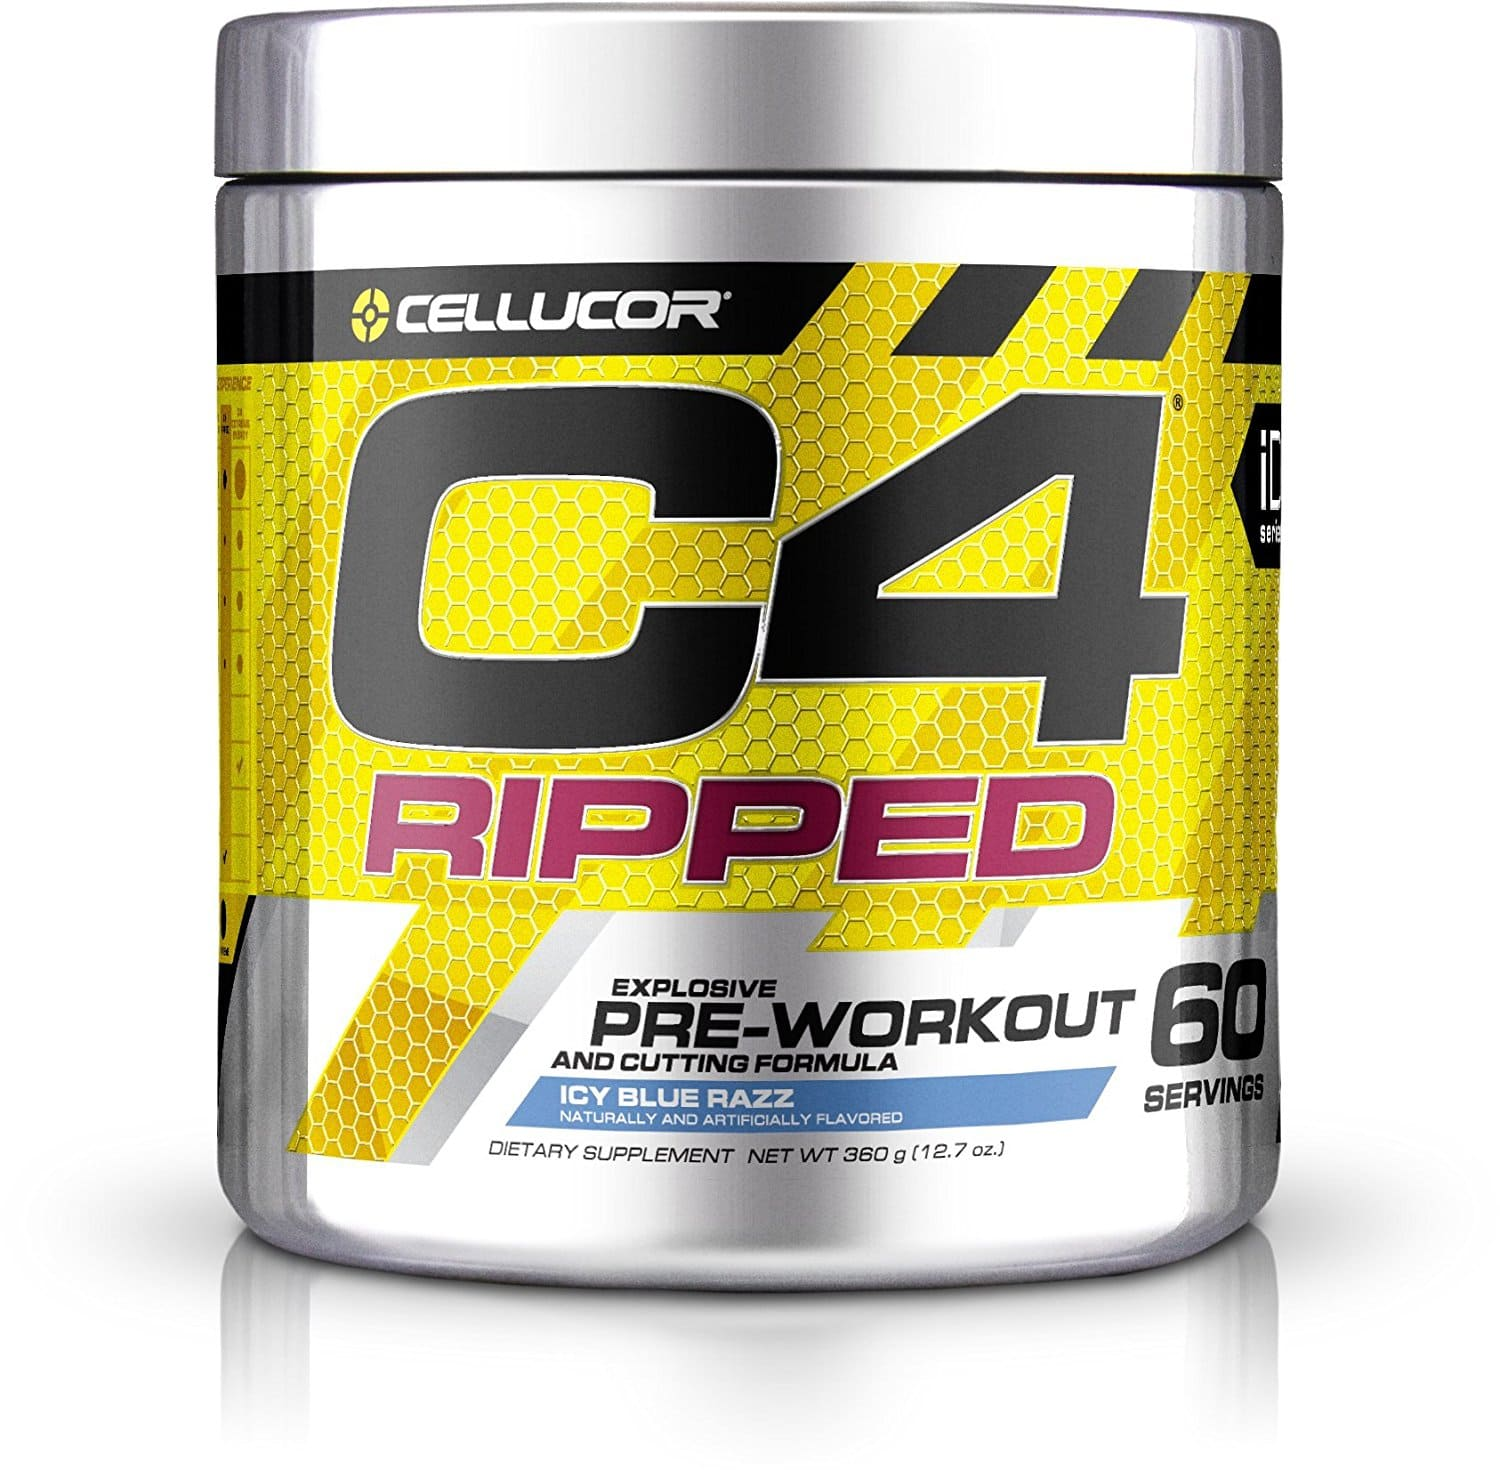 Cellucor C4 Ripped Pre Workout Icy Blue Razz 60 Servings for $38.99 + Free Shipping